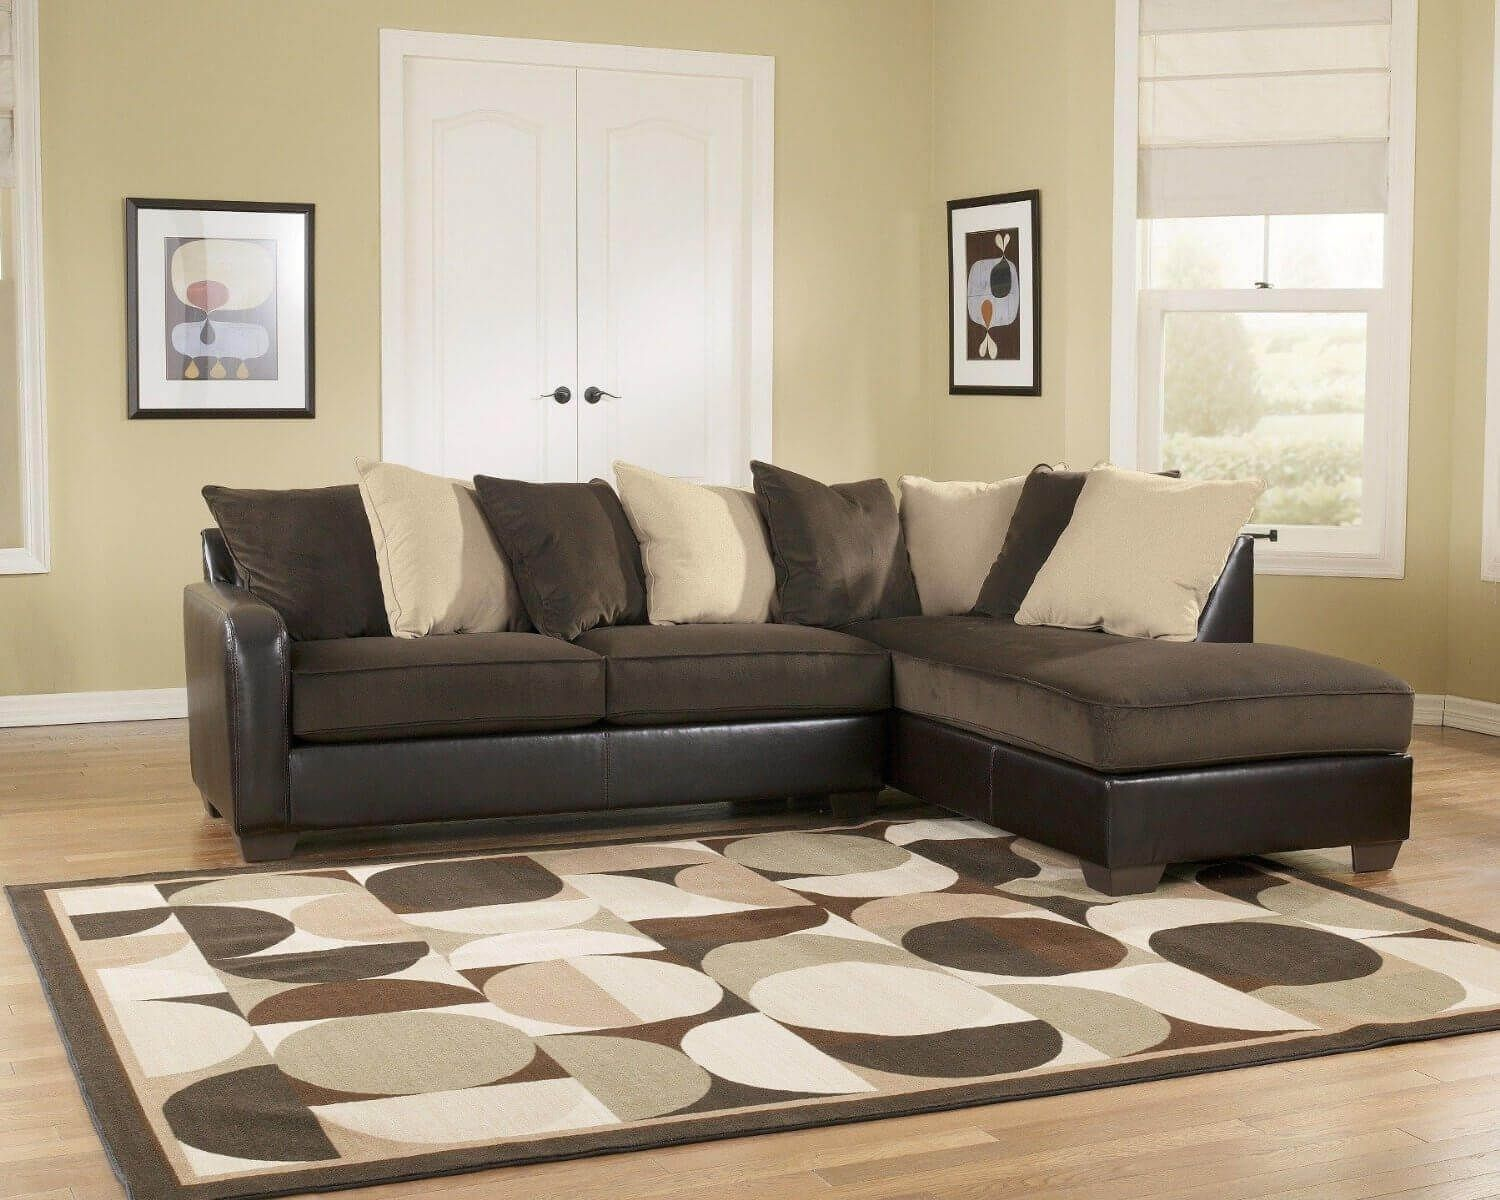 Superieur Sectional Sofas With Chaise Under $1000